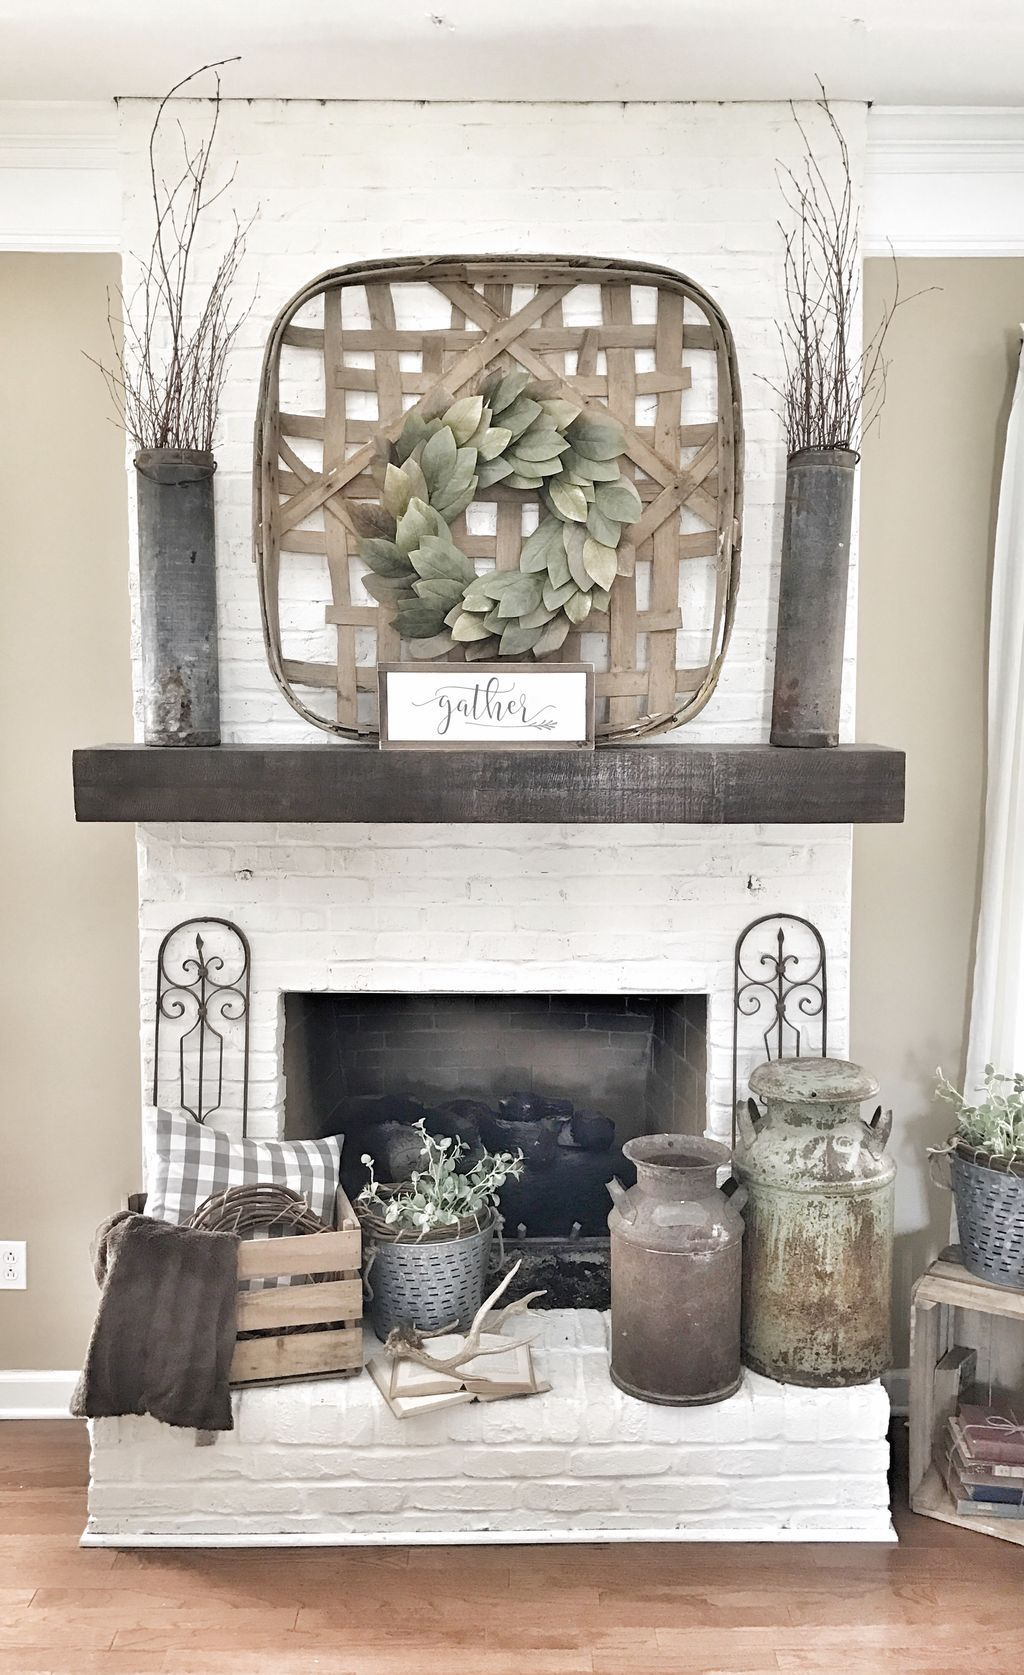 How To Decorate A Brick Fireplace 80 Modern Rustic Painted Brick Fireplaces Ideas Farm House